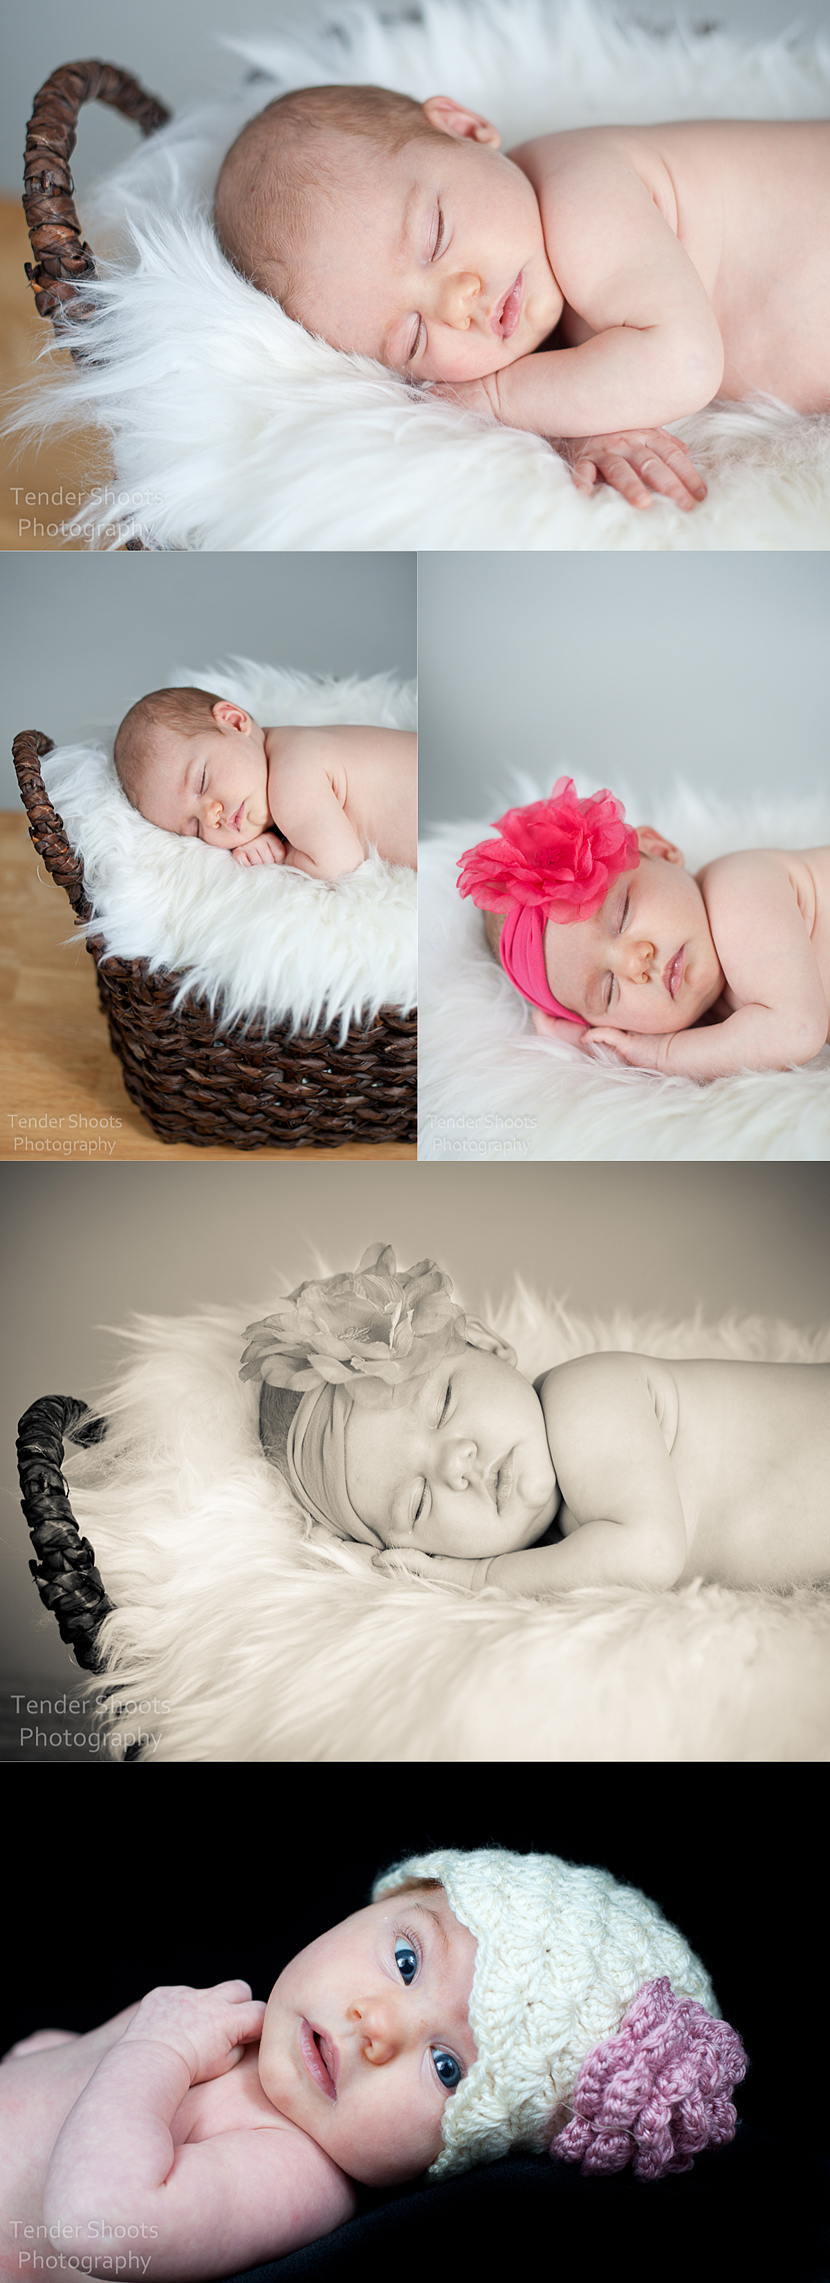 Tender Shoots photography newborn shoot